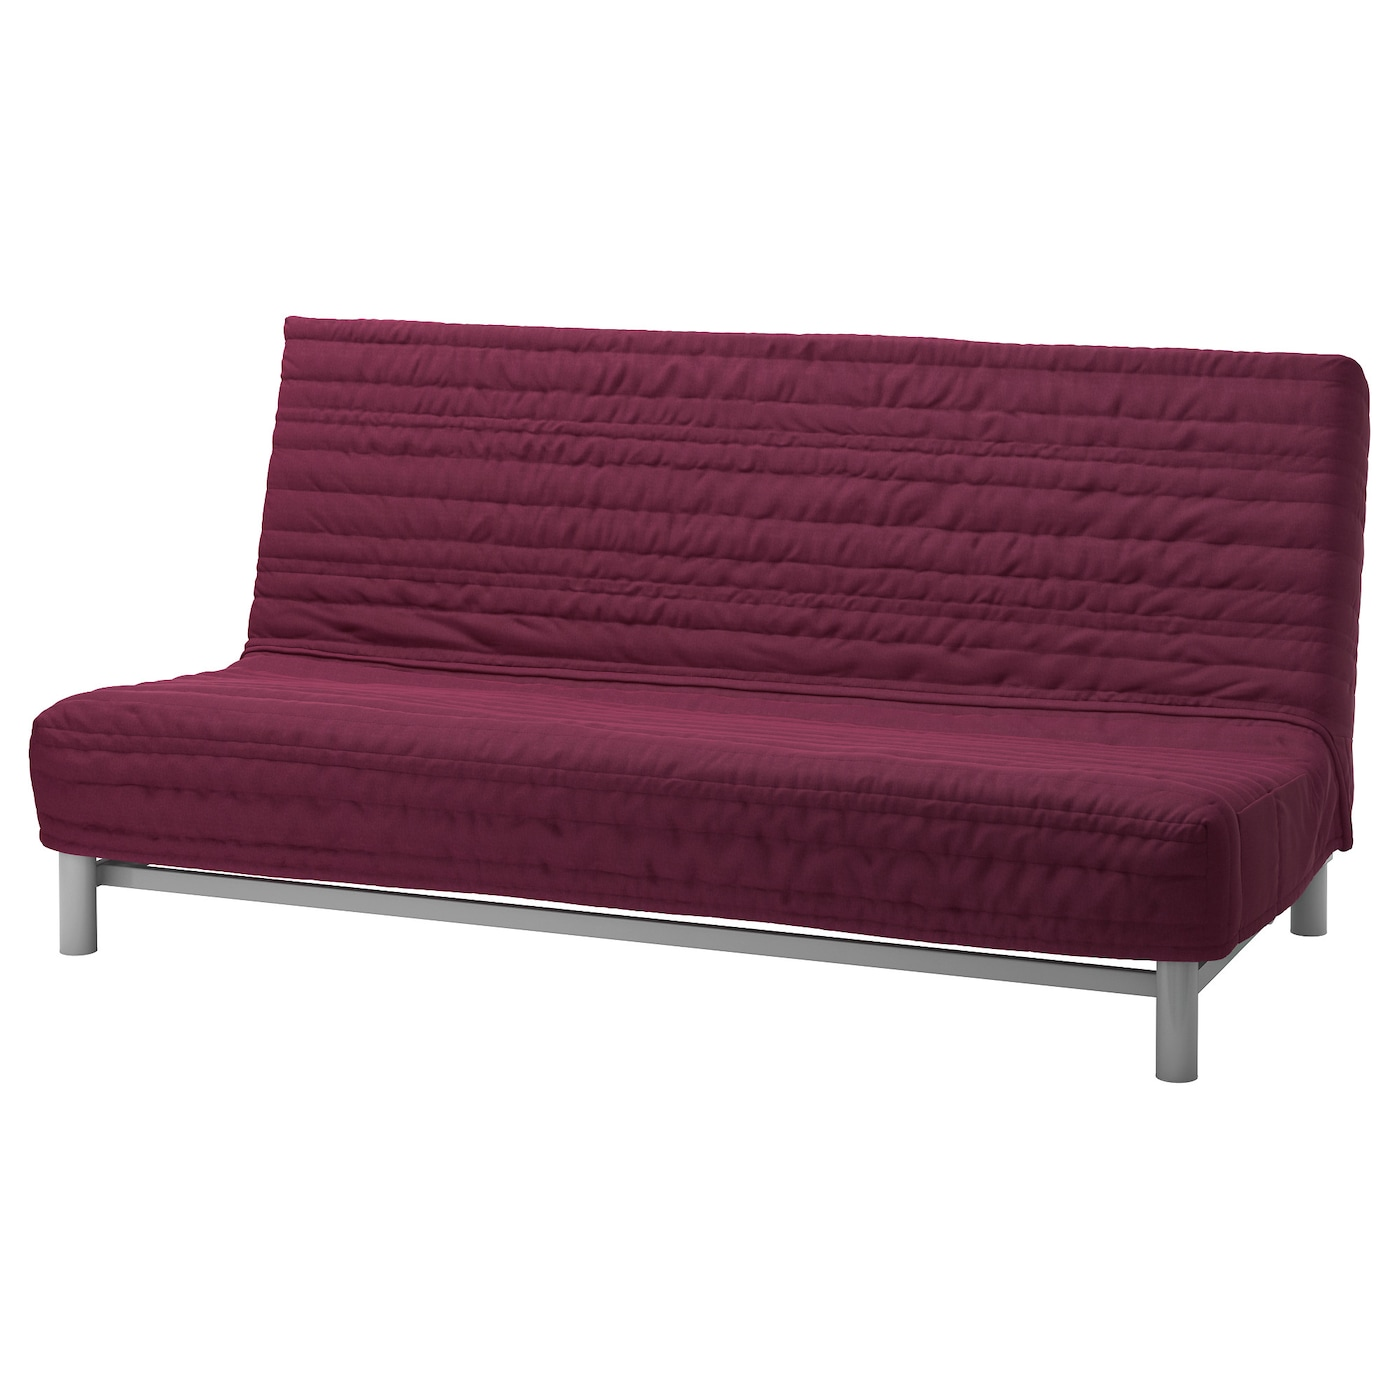 Beddinge L V S Three Seat Sofa Bed Knisa Cerise Ikea